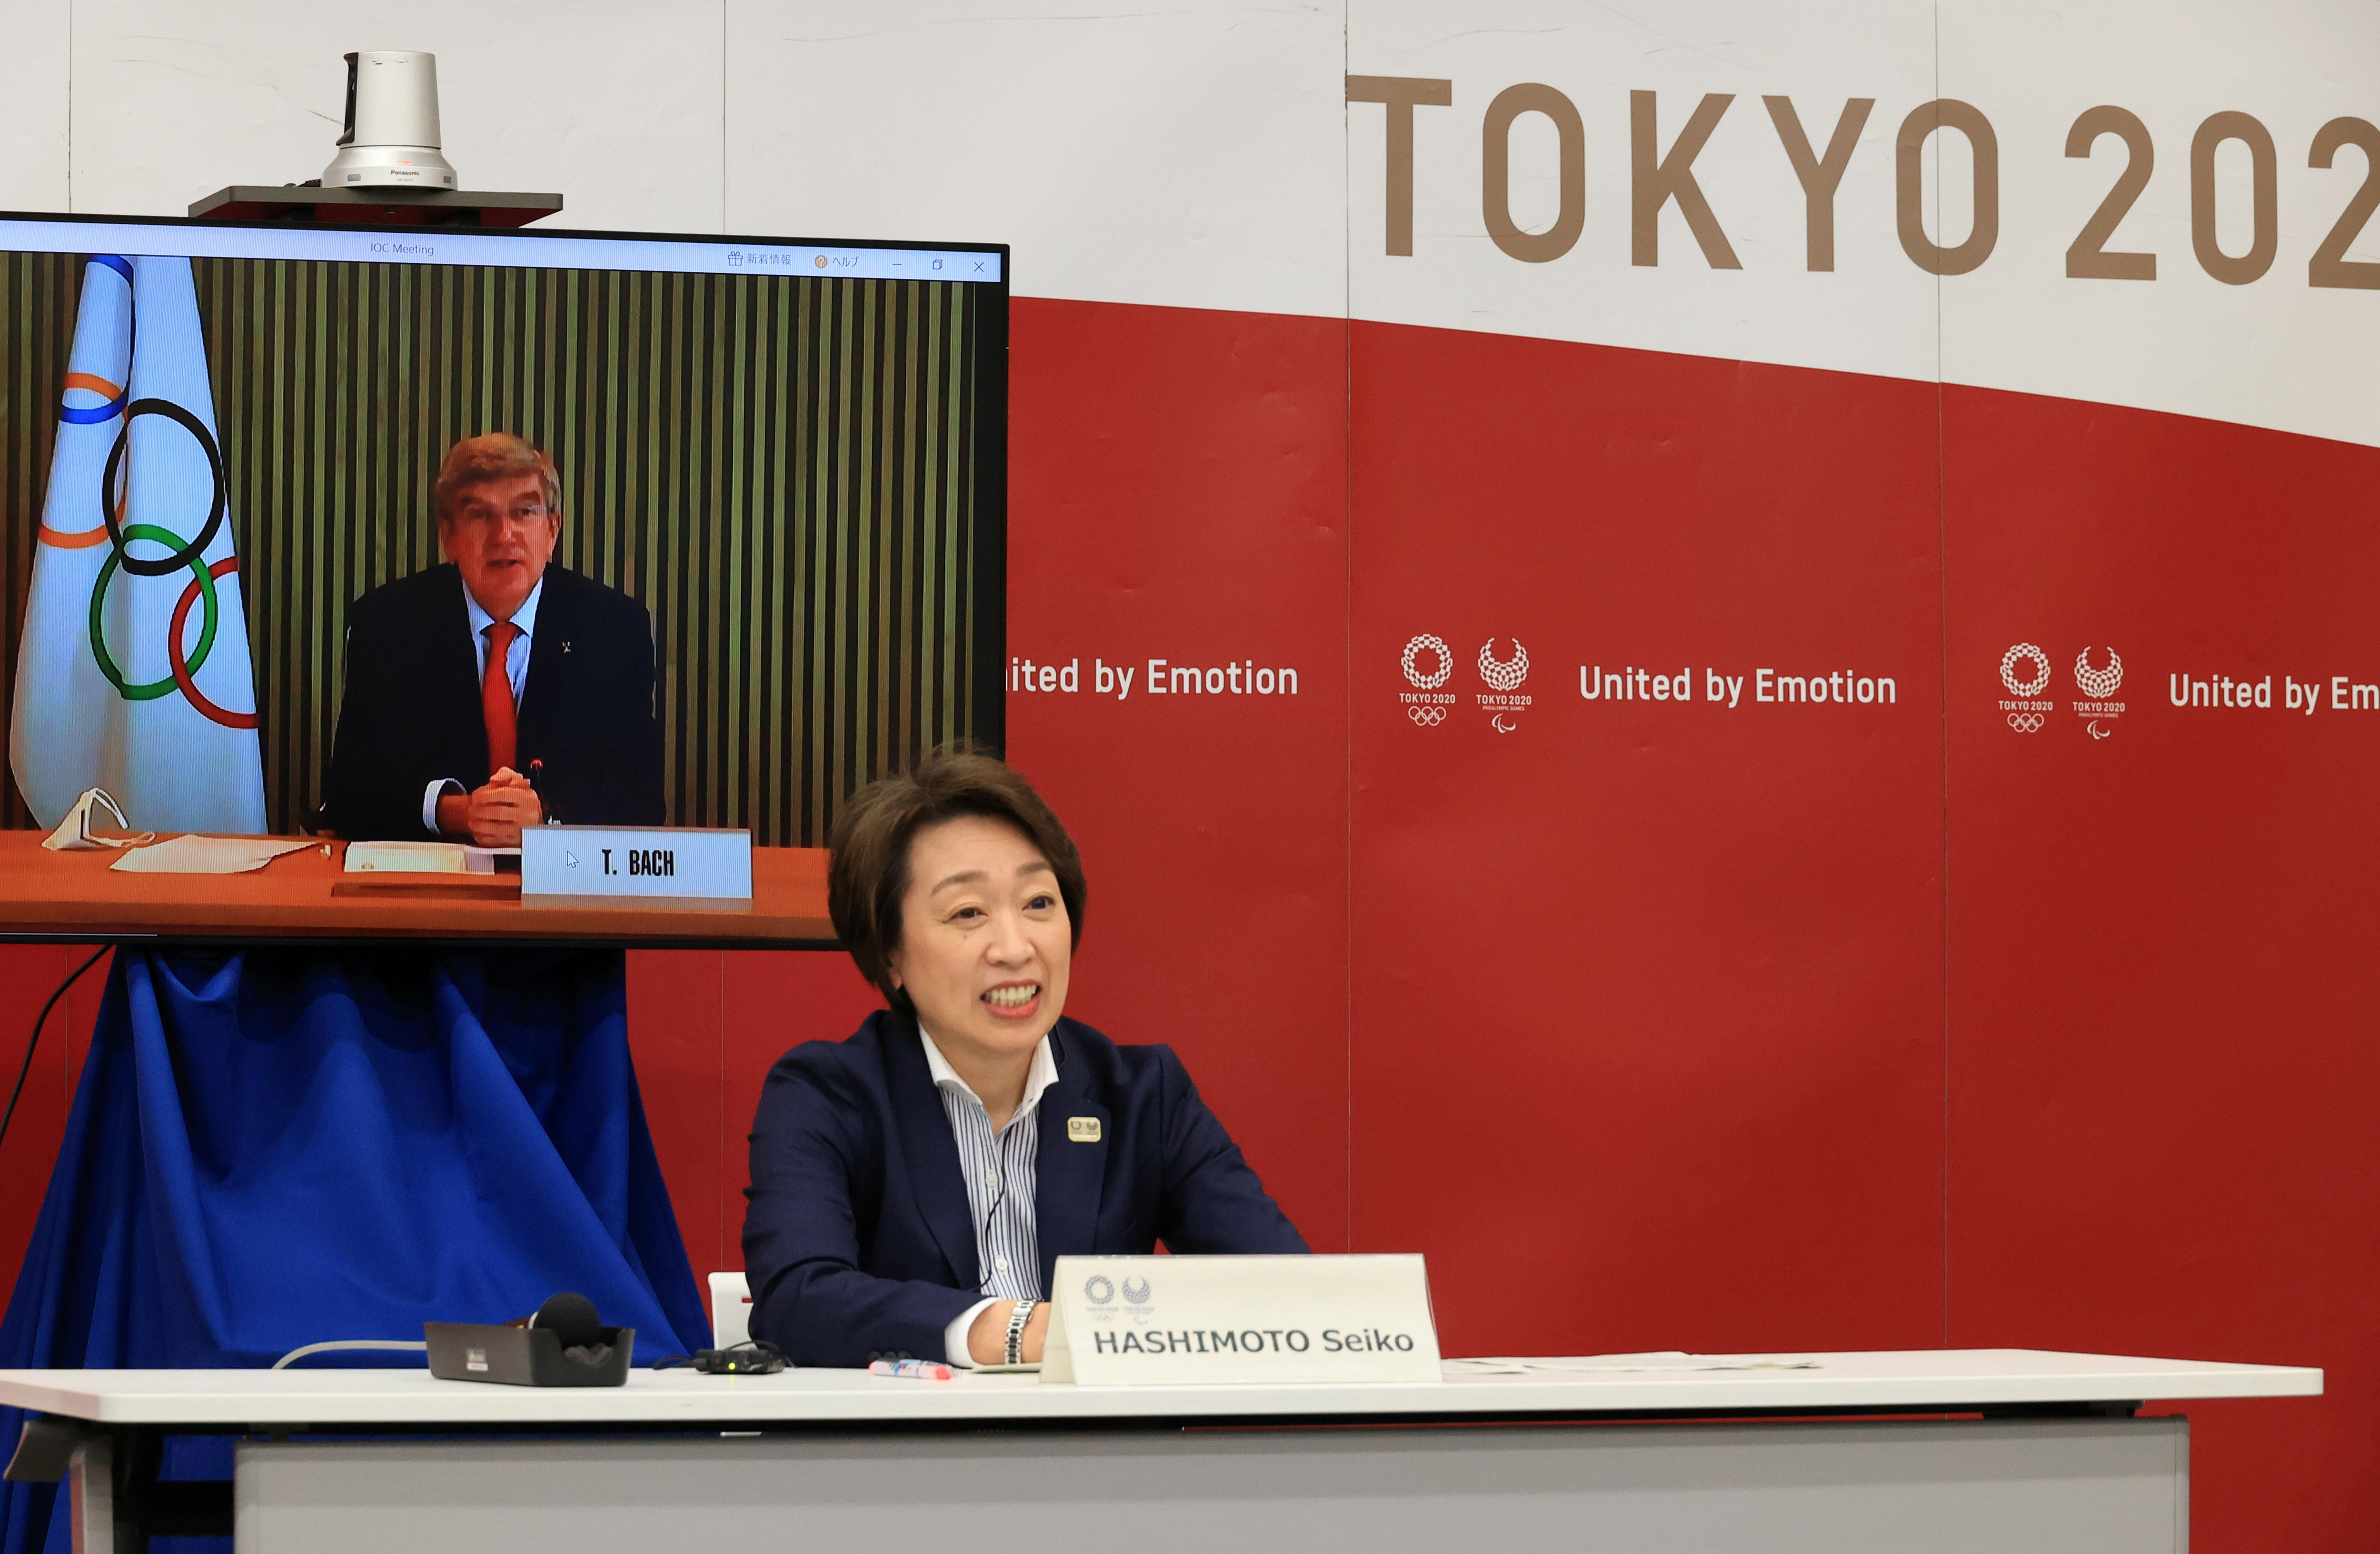 International Olympic Committee (IOC) President Thomas Bach (on a screen) delivers an opening speech while Tokyo 2020 Organizing Committee president Seiko Hashimoto listens, at a five-party meeting of Tokyo 2020 Olympic and Paralympic Games with International Paralympic Committee (IPC) president Andrew Parsons, Tokyo Governor Yuriko Koike and Japanese Olympic Minister Tamayo Marukawa in Tokyo, Japan March 20, 2021. Yoshikazu Tsuno/Pool via REUTERS